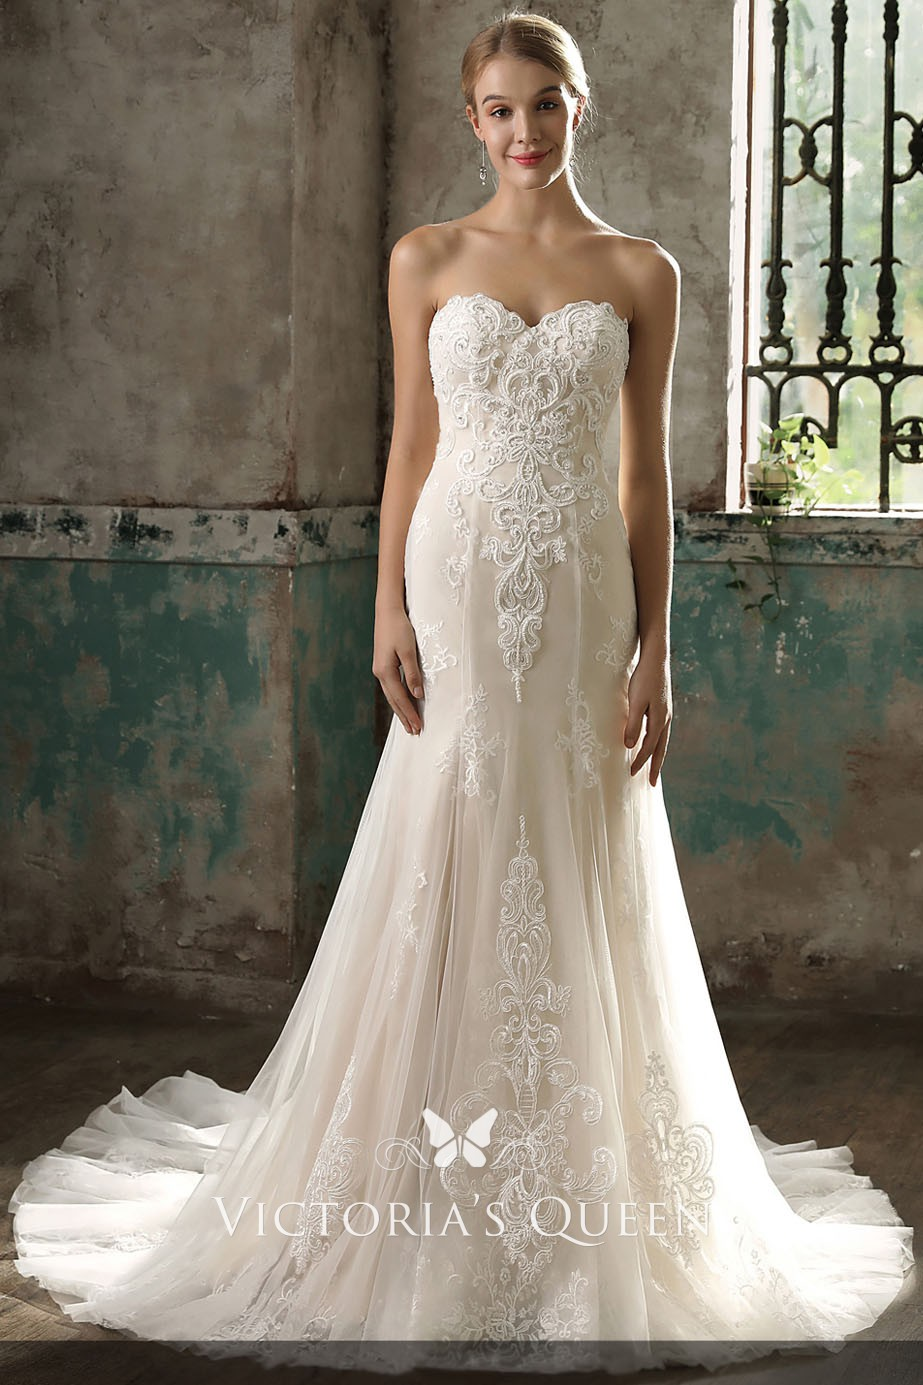 Champagne Lace Tulle Strapless Sweetheart Wedding Dress Vq